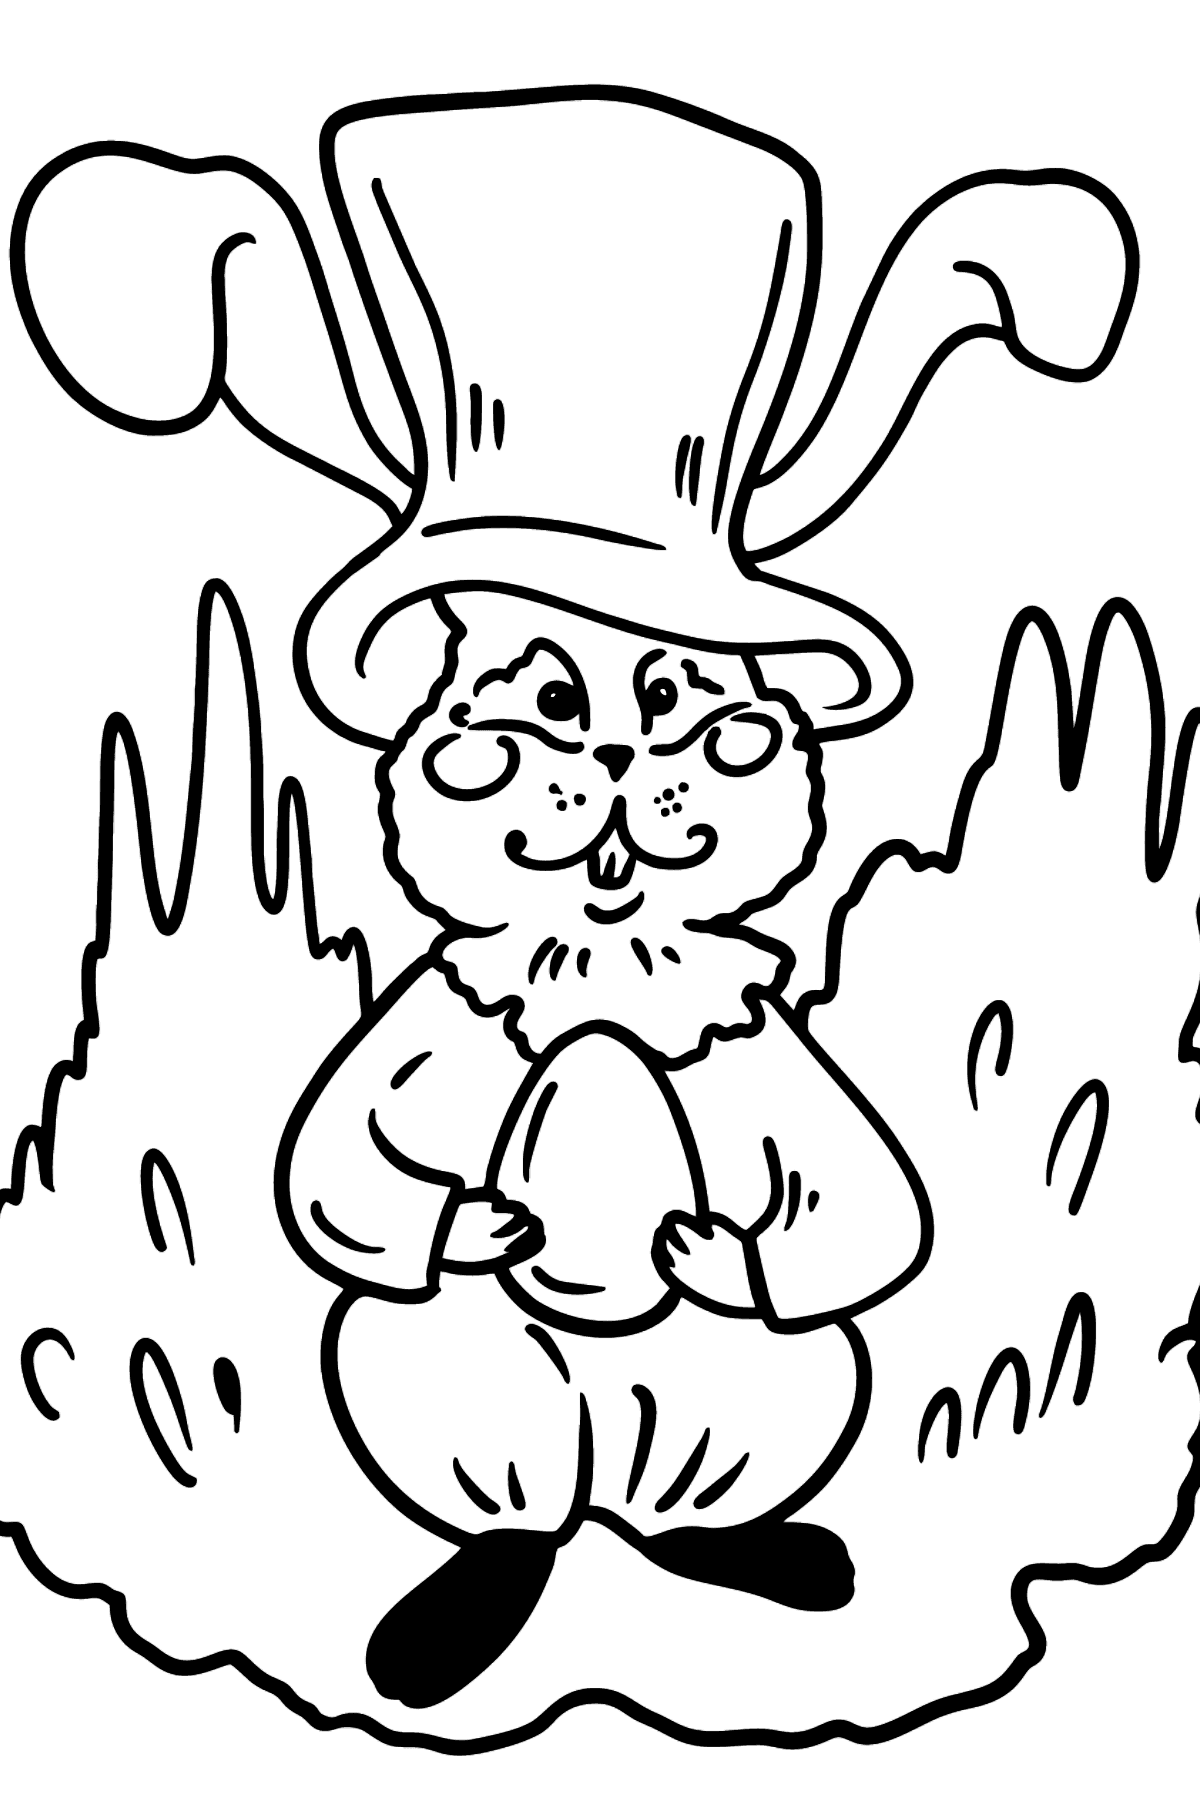 Easter Bunny coloring page - Coloring Pages for Kids